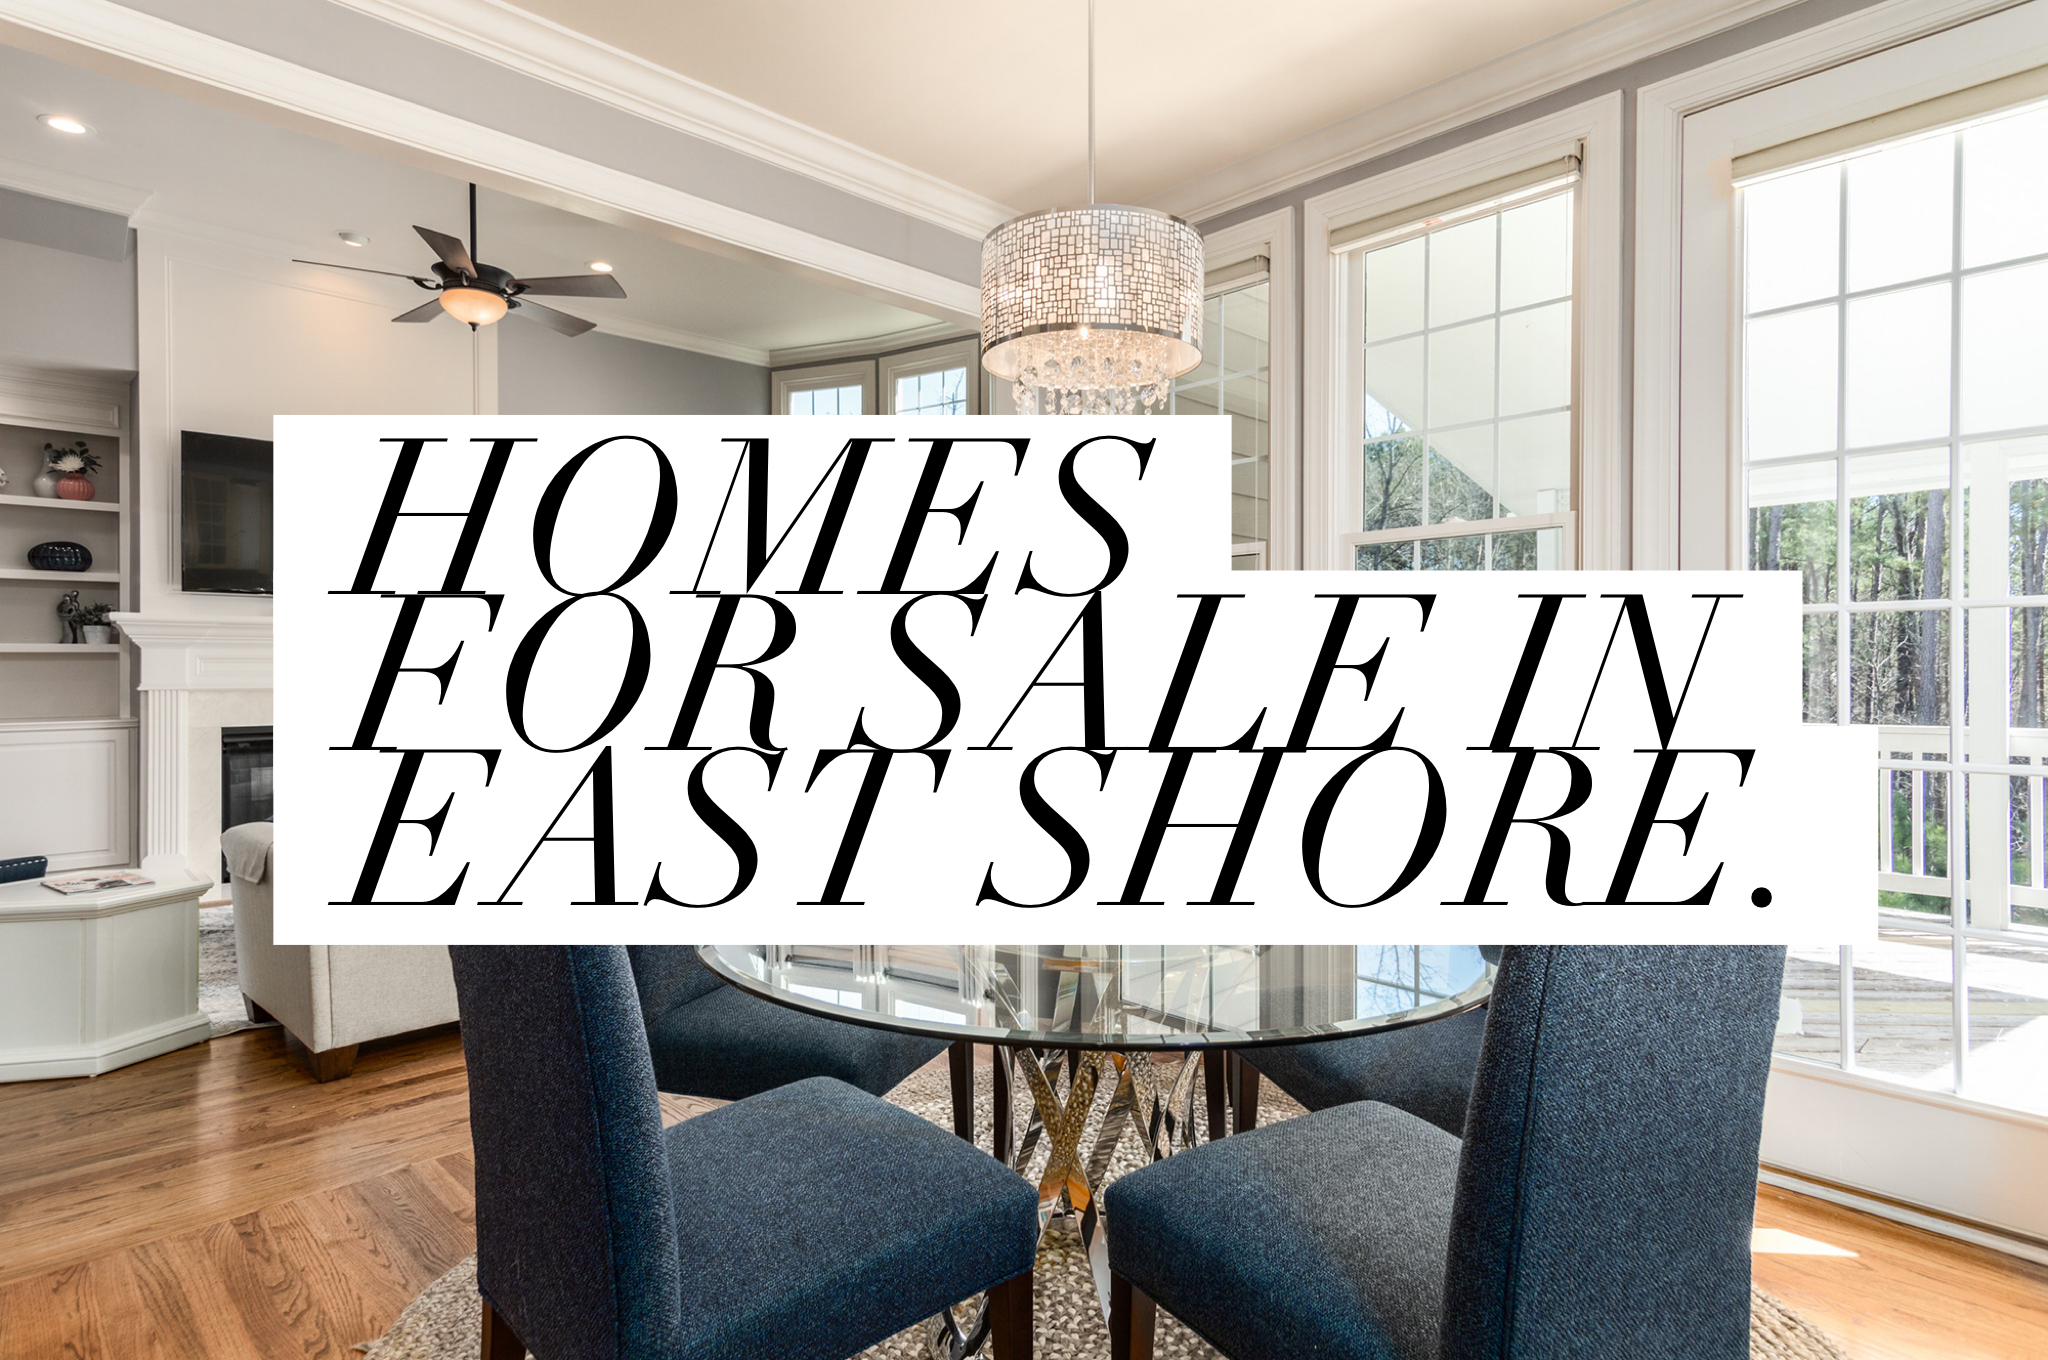 beautiful home in east shore - the woodlands- on the lake - homes for sale in memorial northwest - open houses in memorial northwest - real estate agent and realtor, jordan marie schilleci, jo & co. realty group